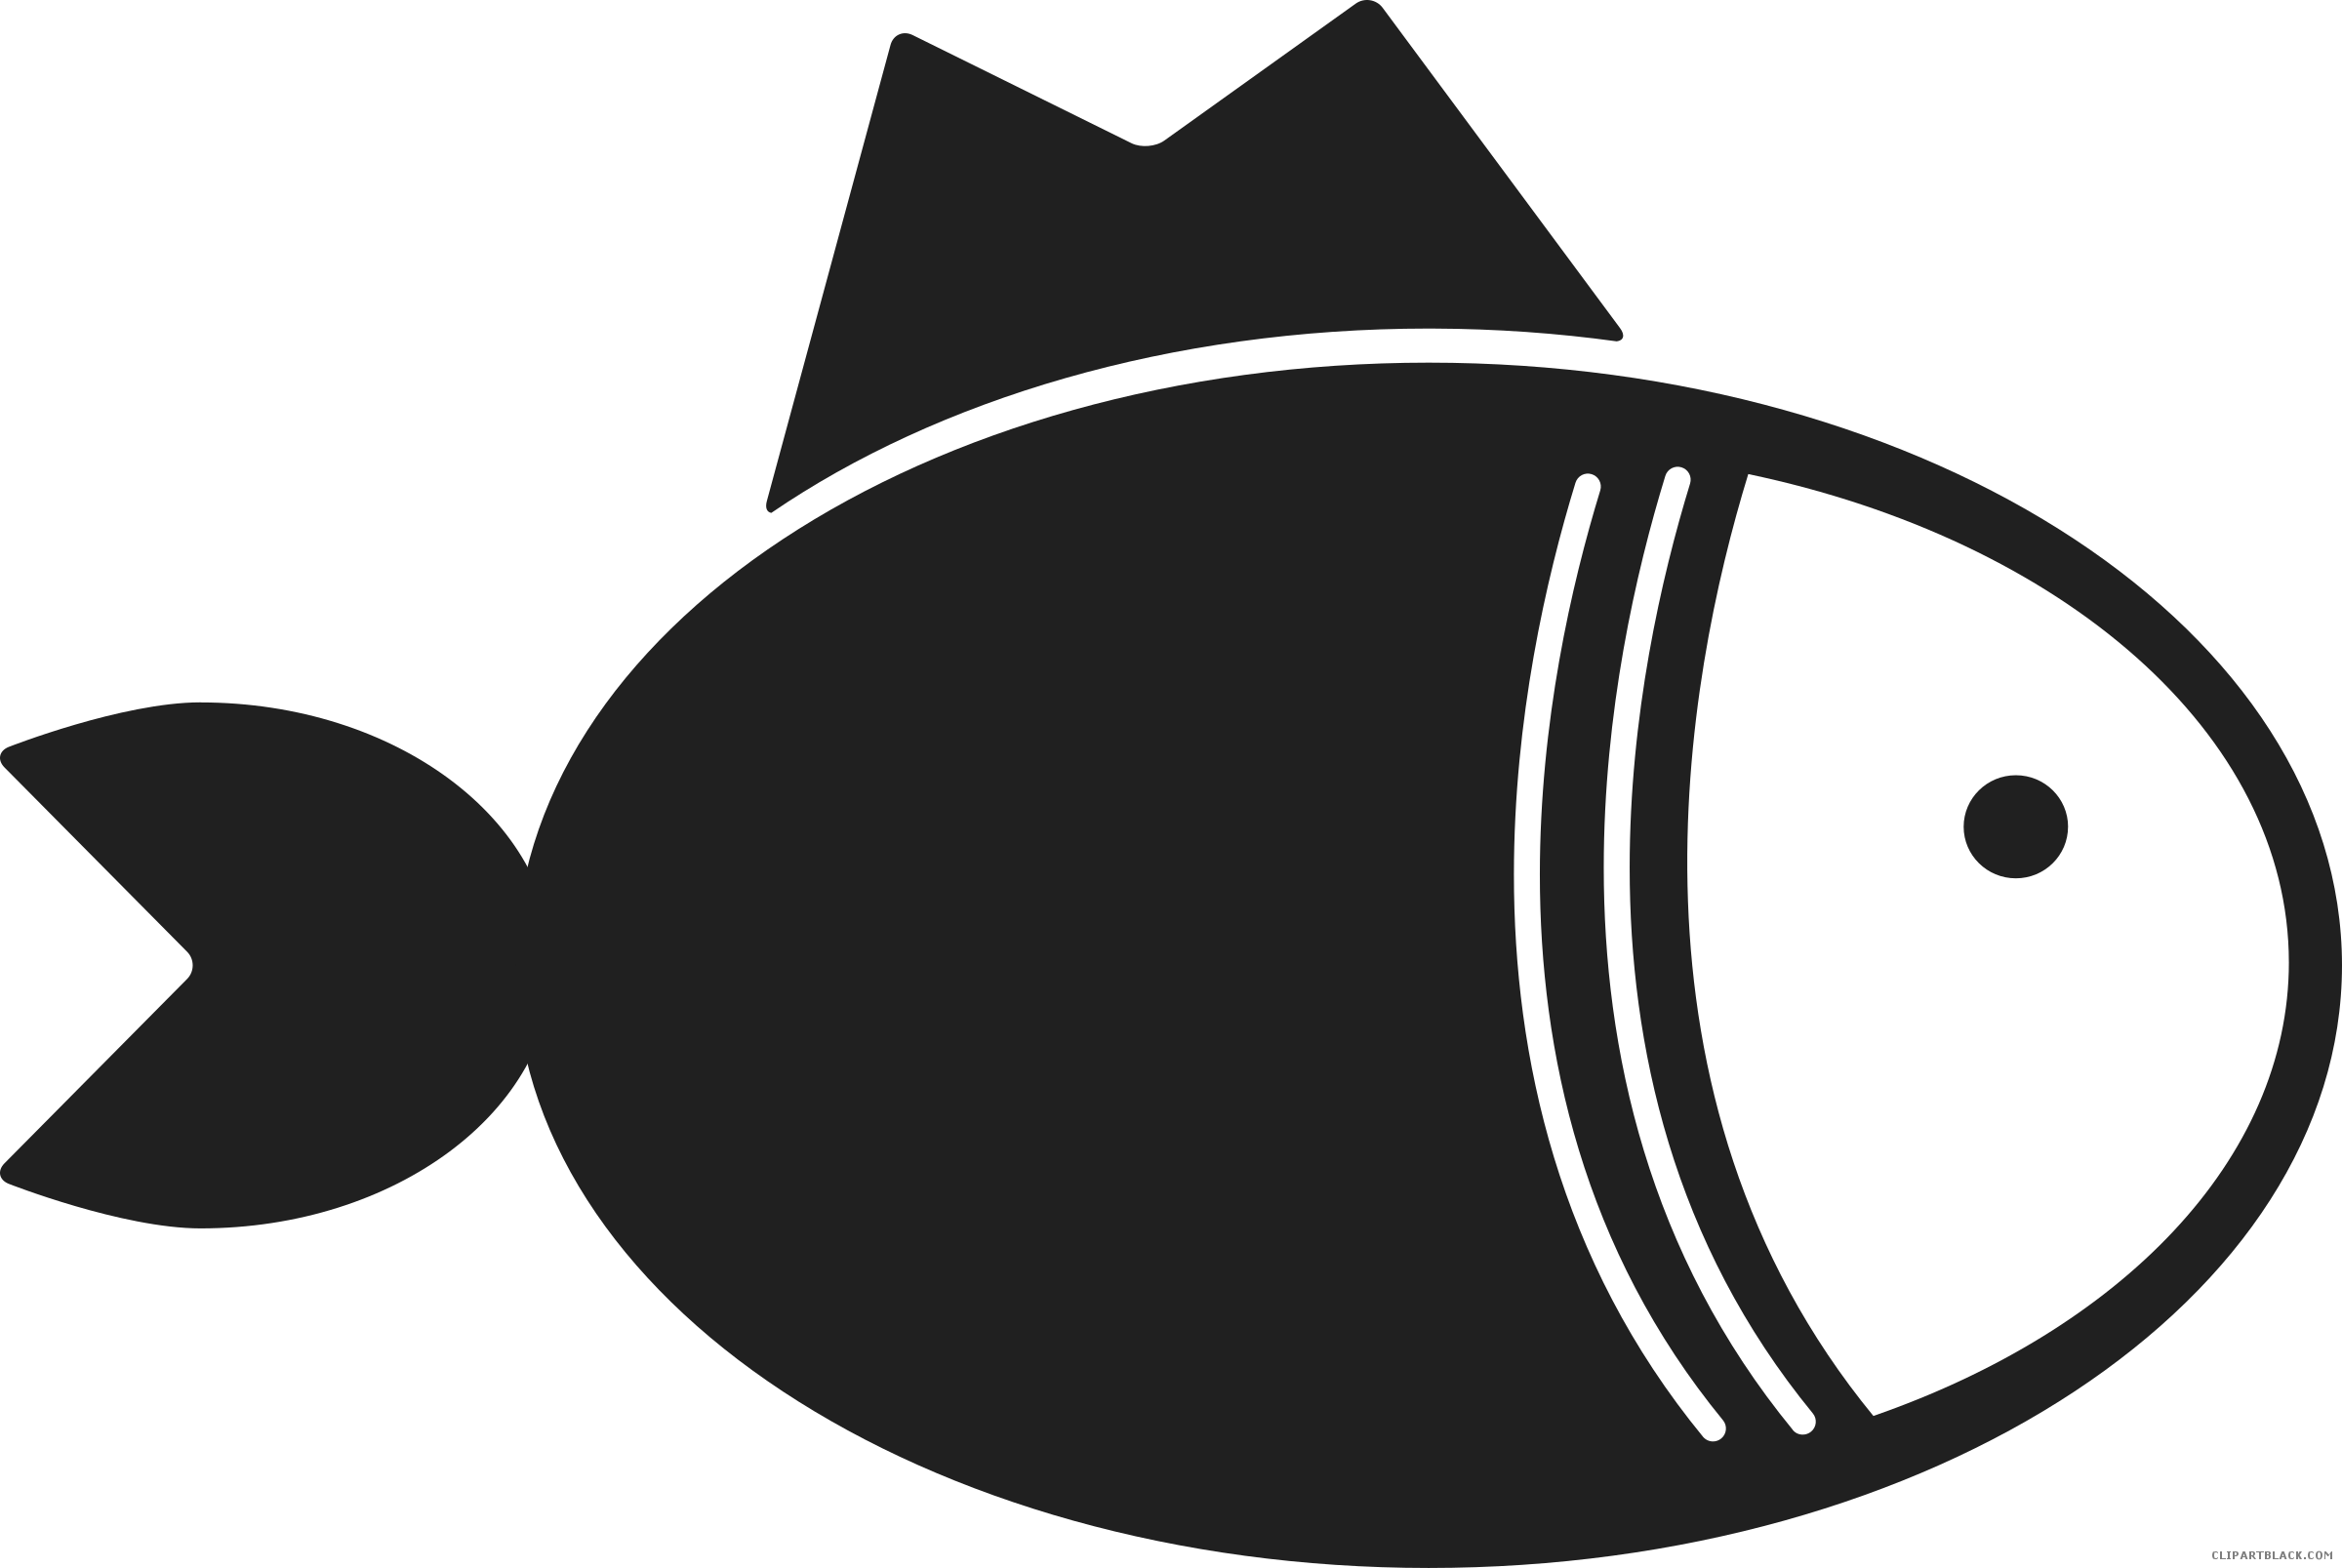 Fish clipart silhouette png free Fish Silhouette Clipart - ClipartBlack.com png free